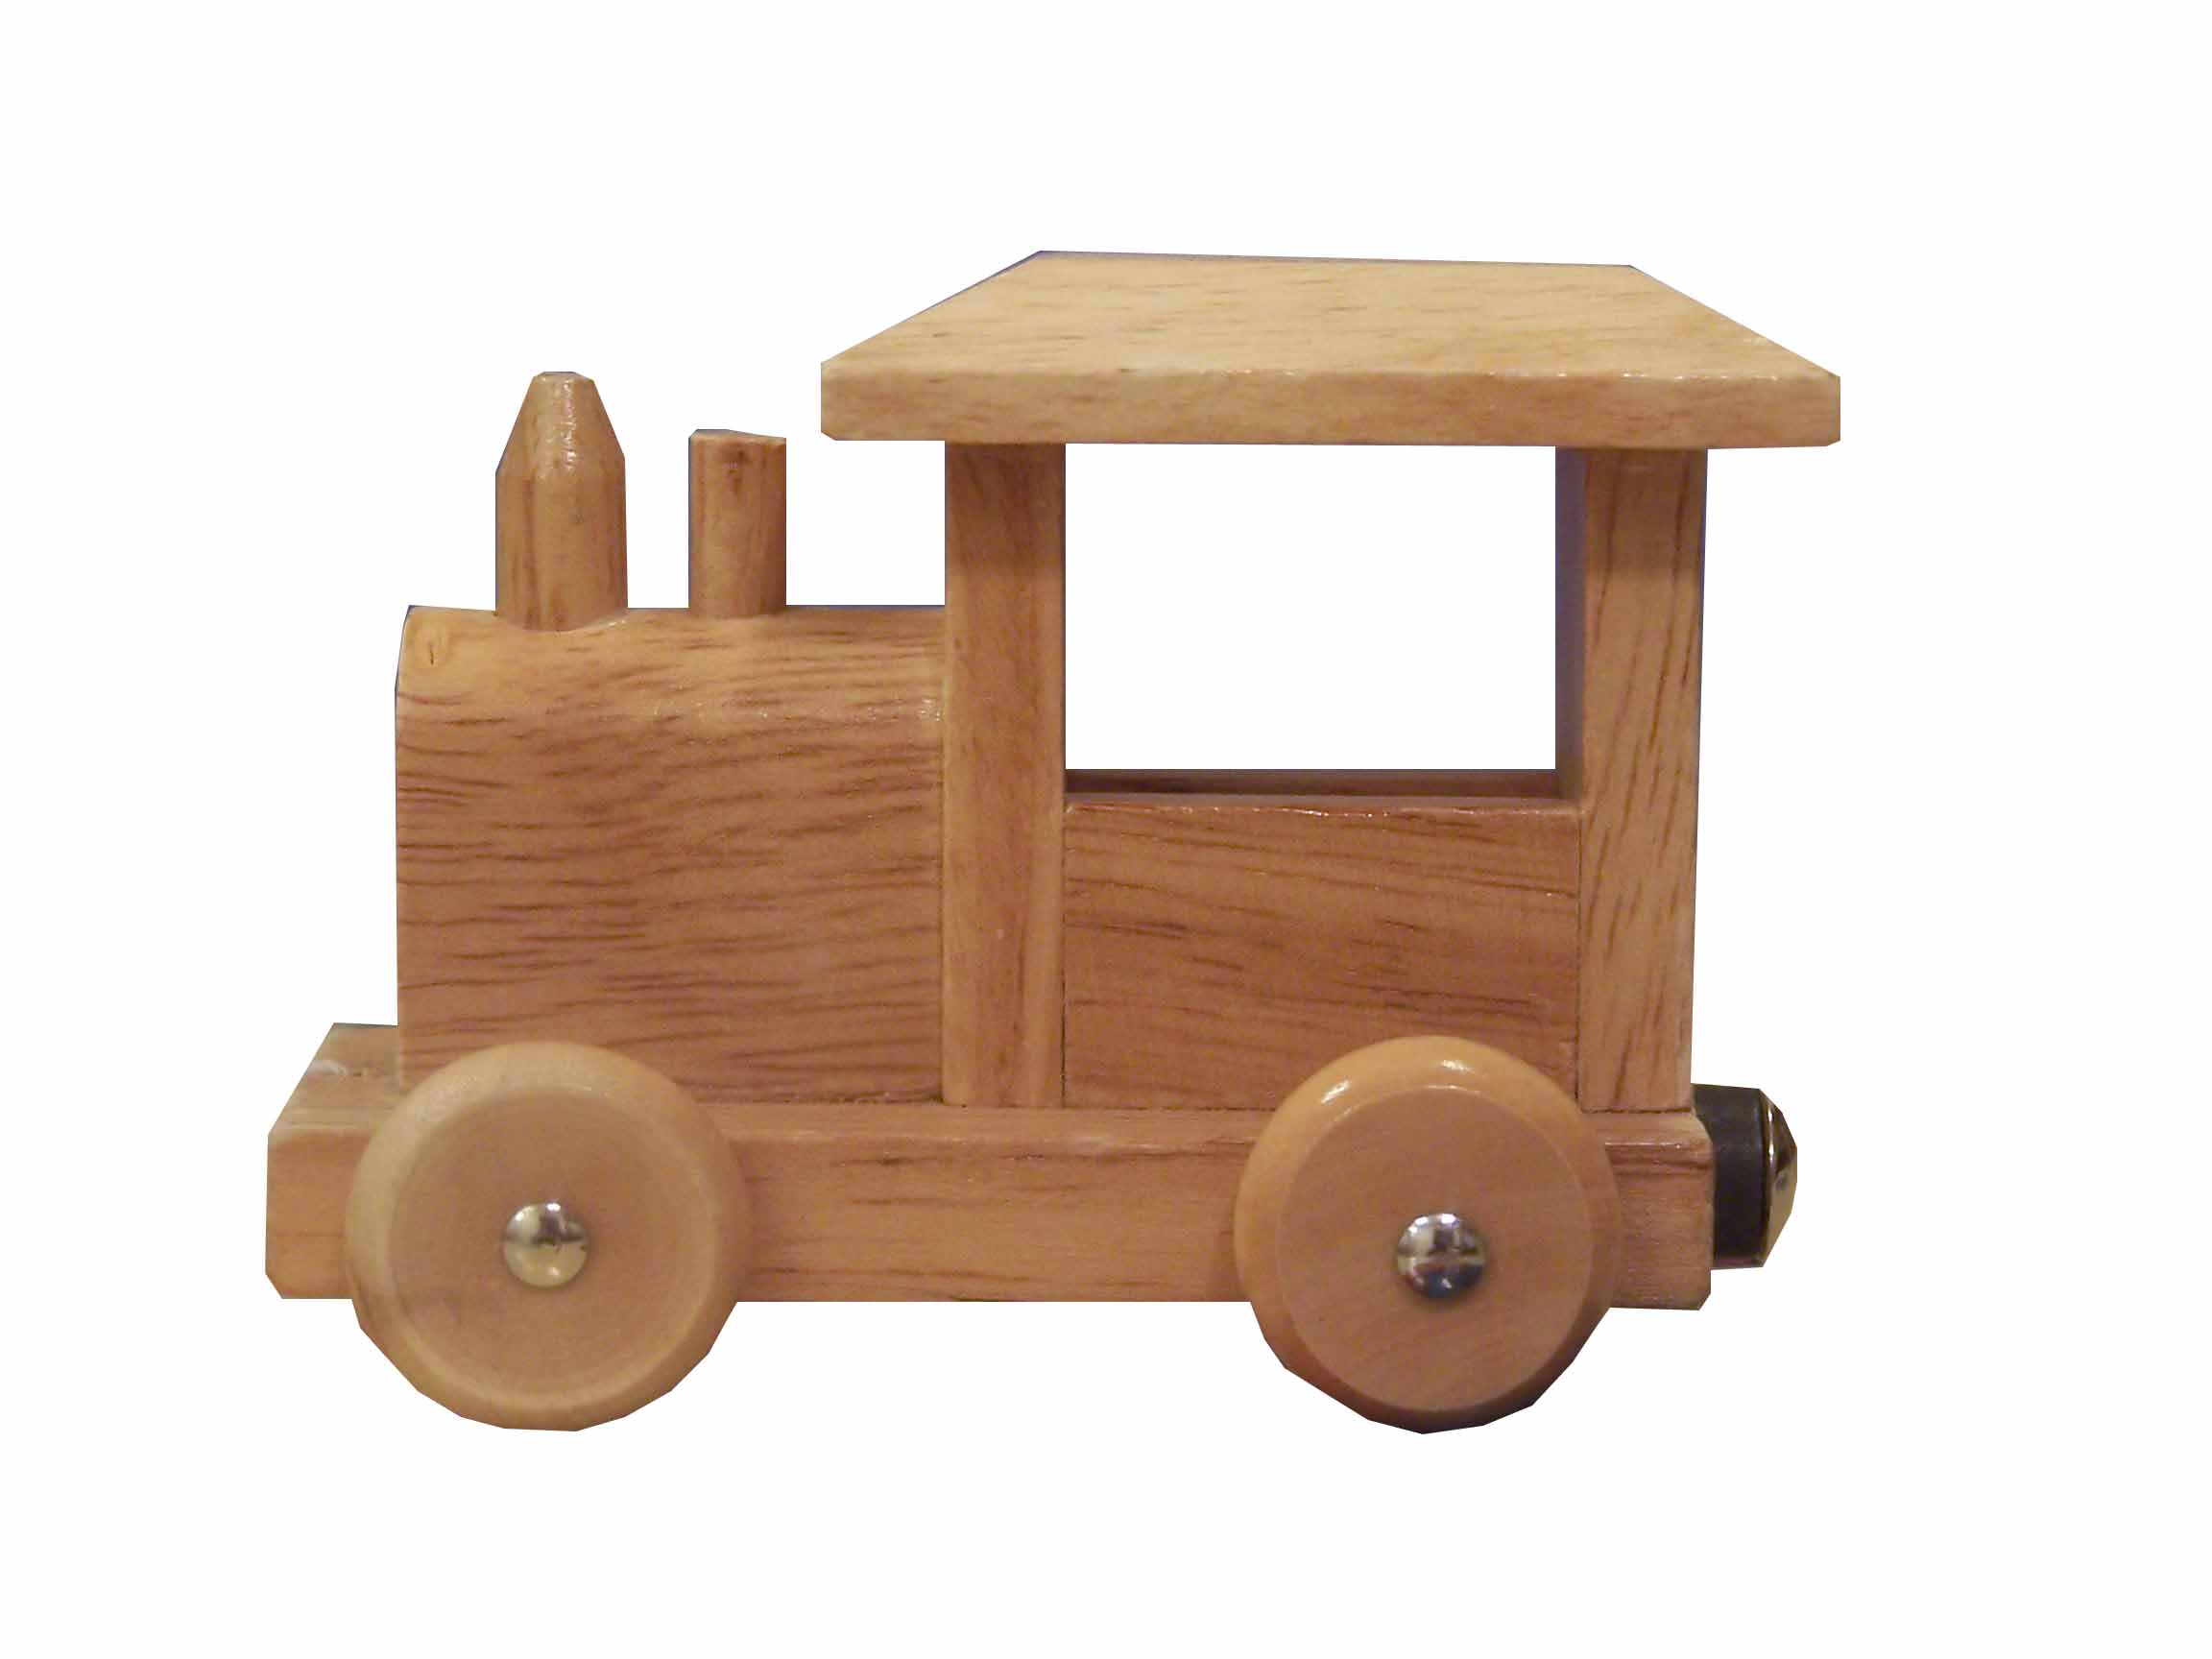 Wooden Toy Trains : Clip art wooden train set clipart suggest